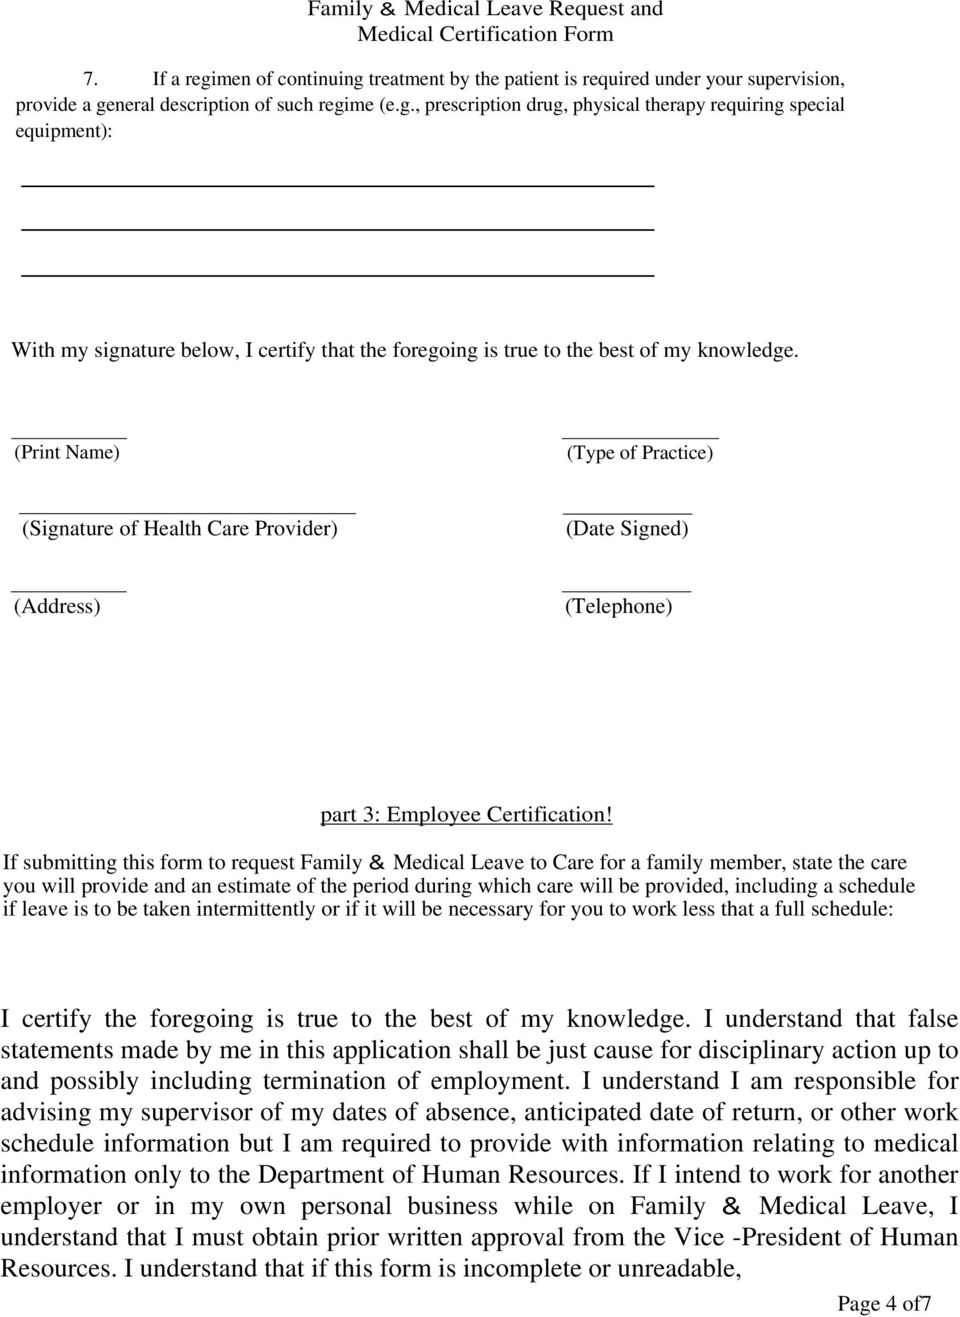 Family Medical Leave Request And Medical Certification Form Part